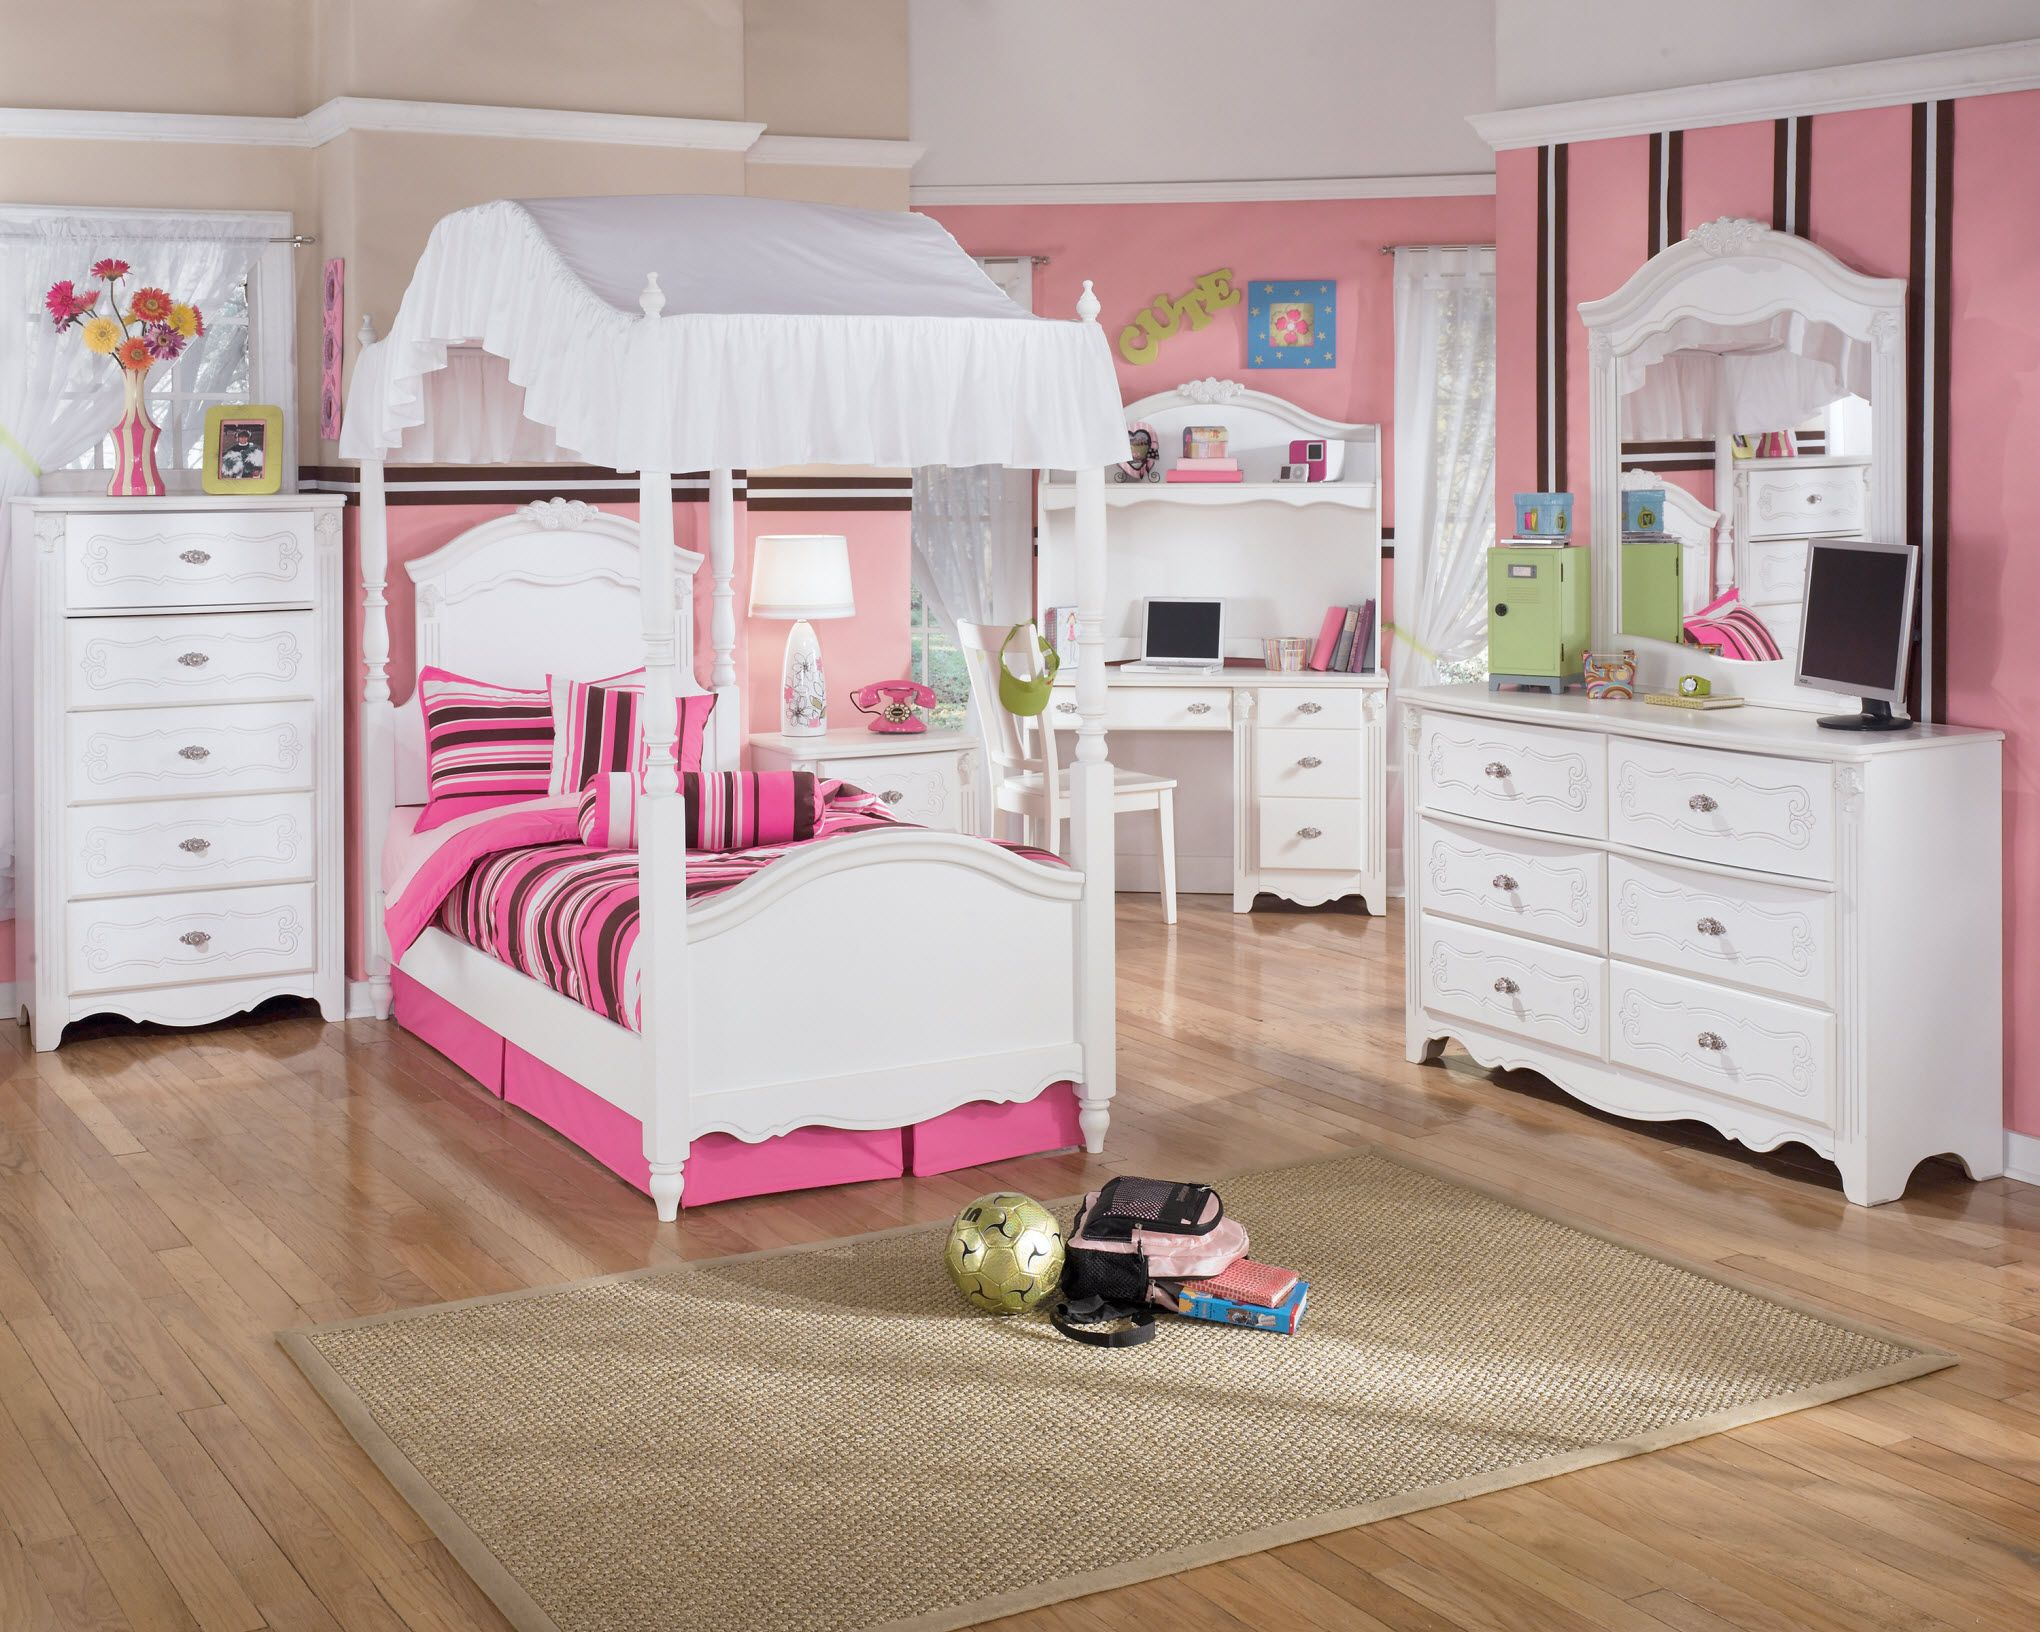 Best Images About Kids Bedroom On Pinterest Kid Pink - Kids bedroom